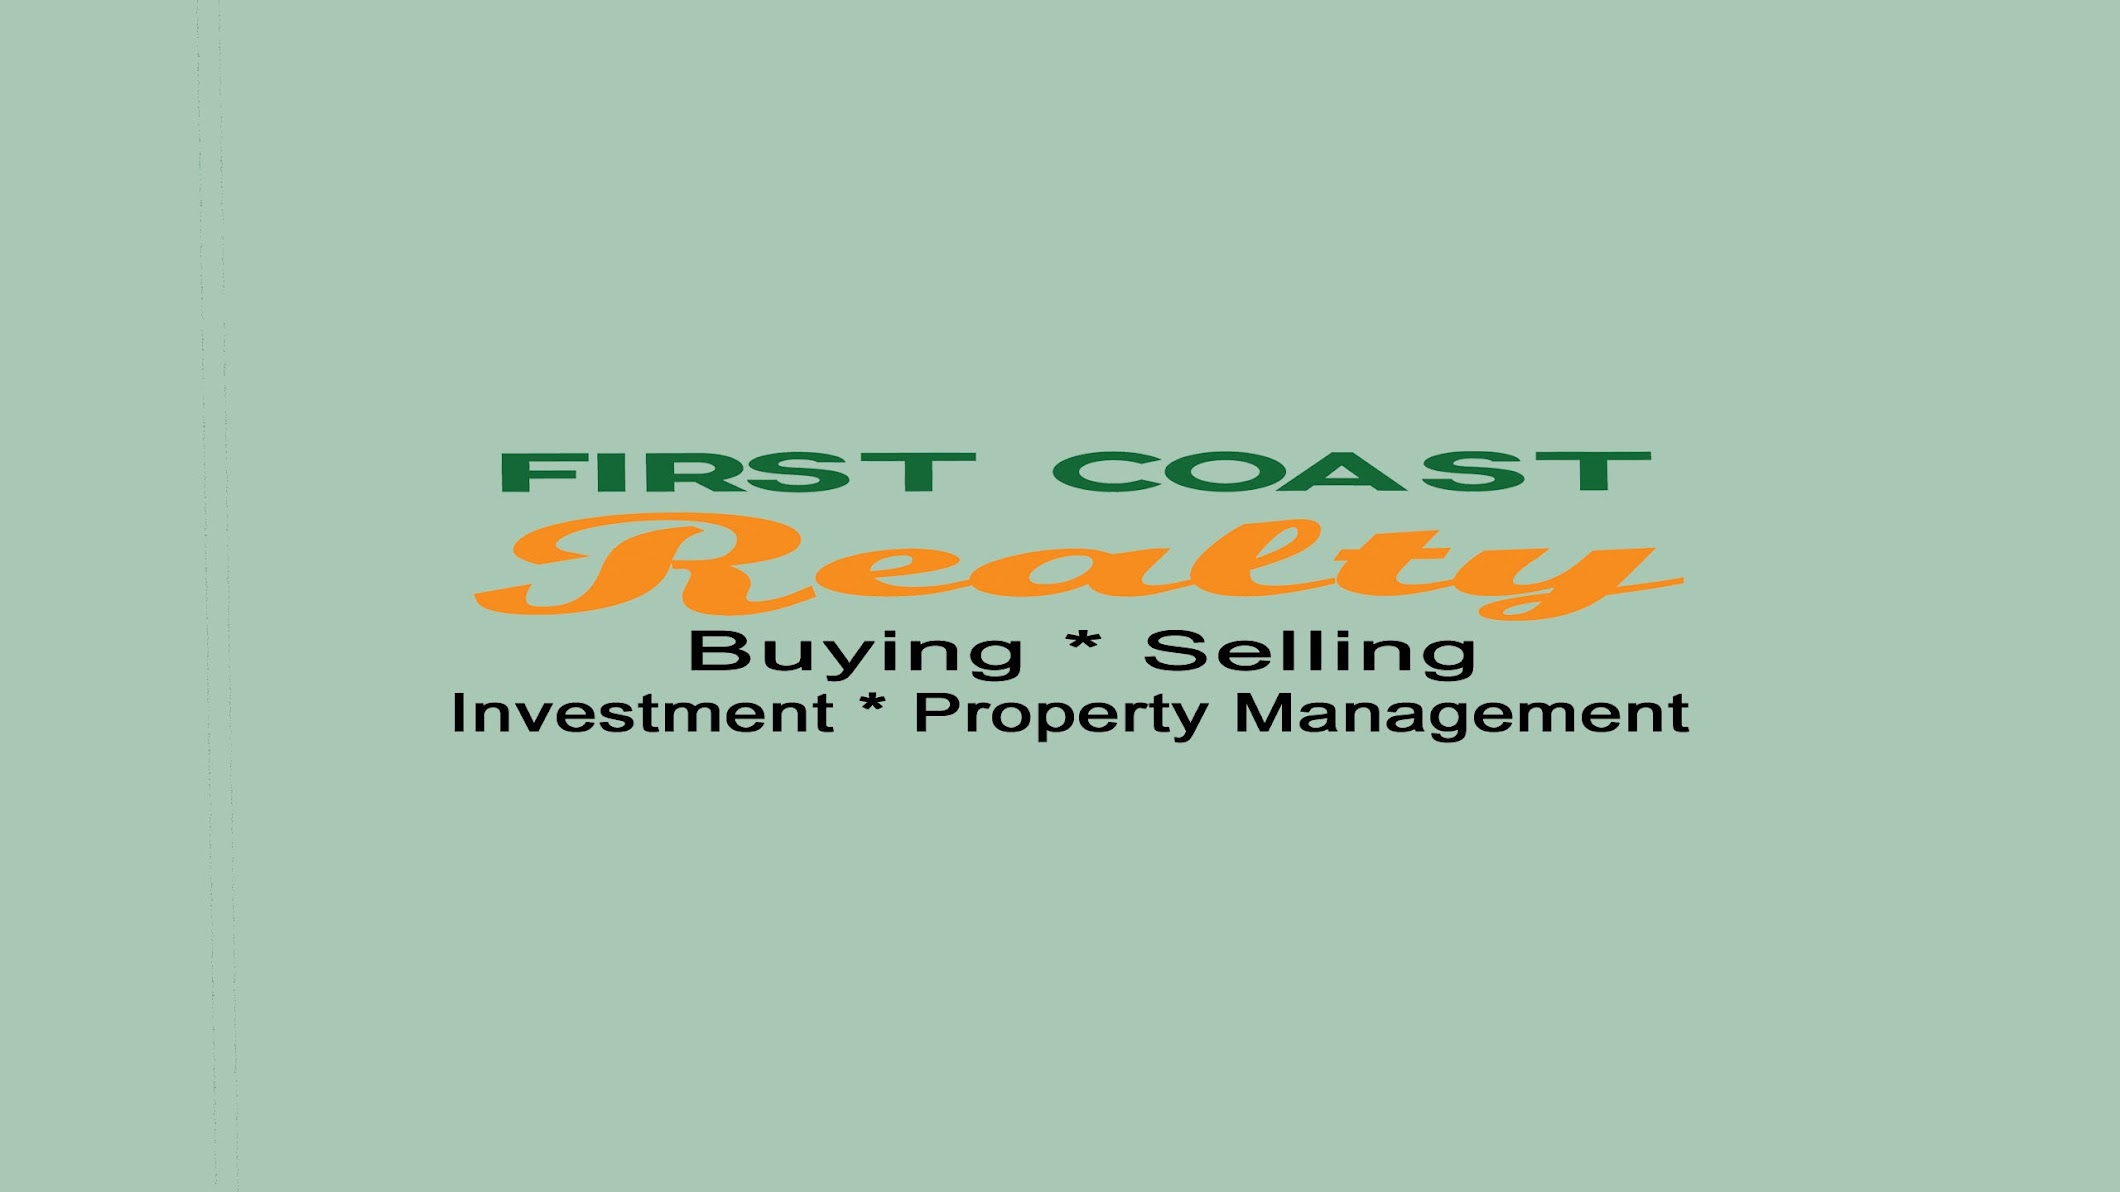 First Coast Realty Inc